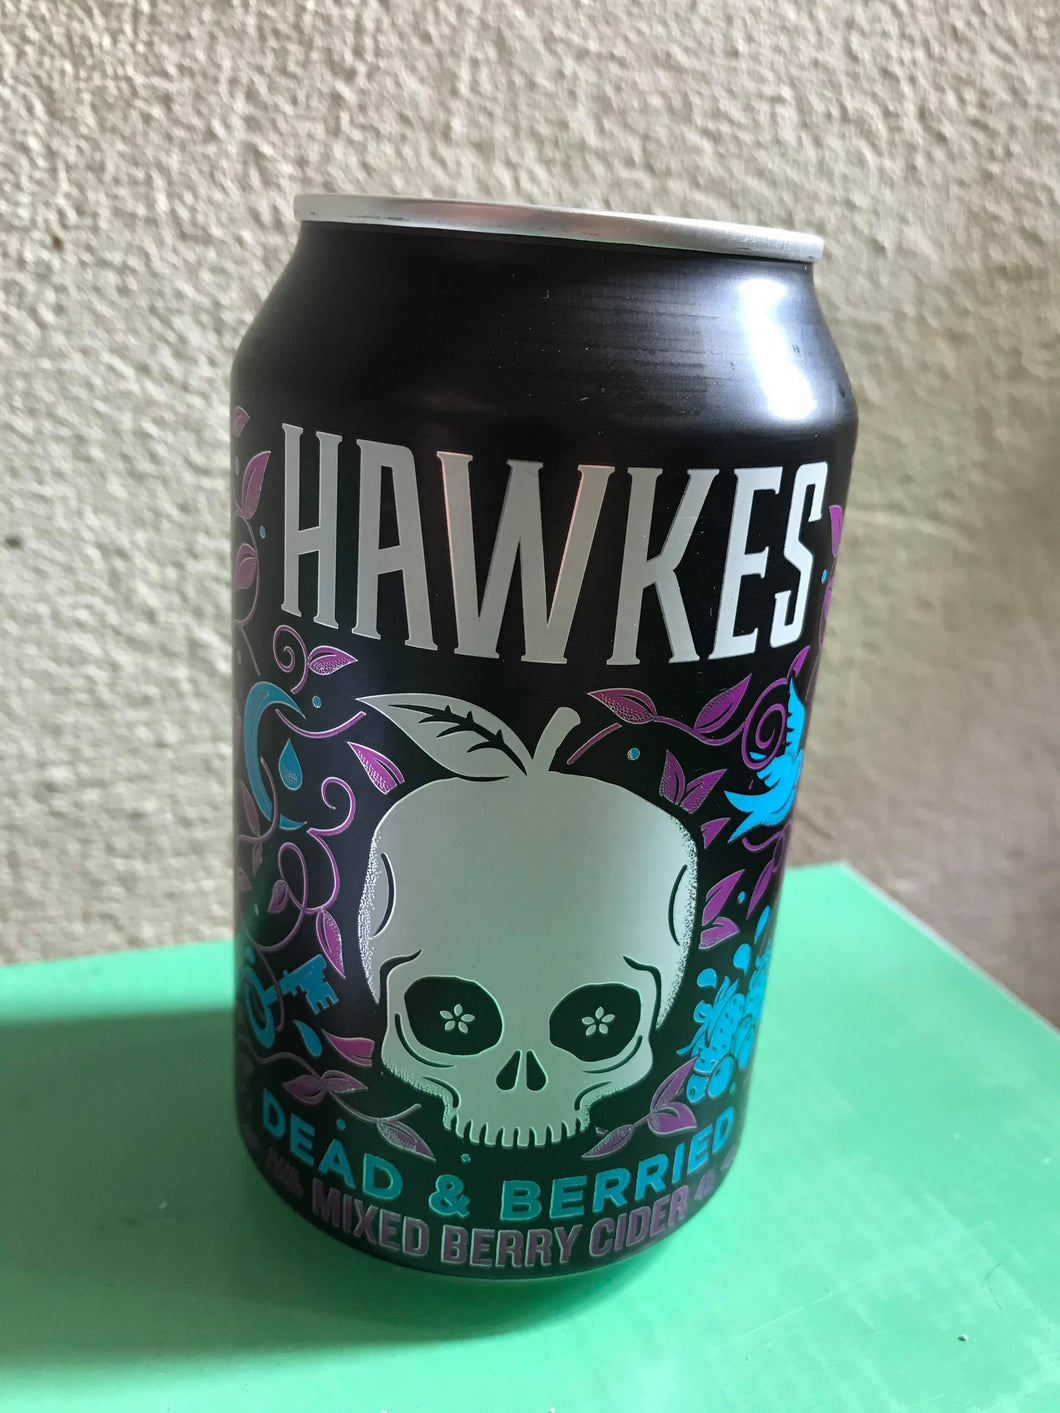 Hawkes - Dead And Berried Mixed Berry Cider (330ml) 4.0%